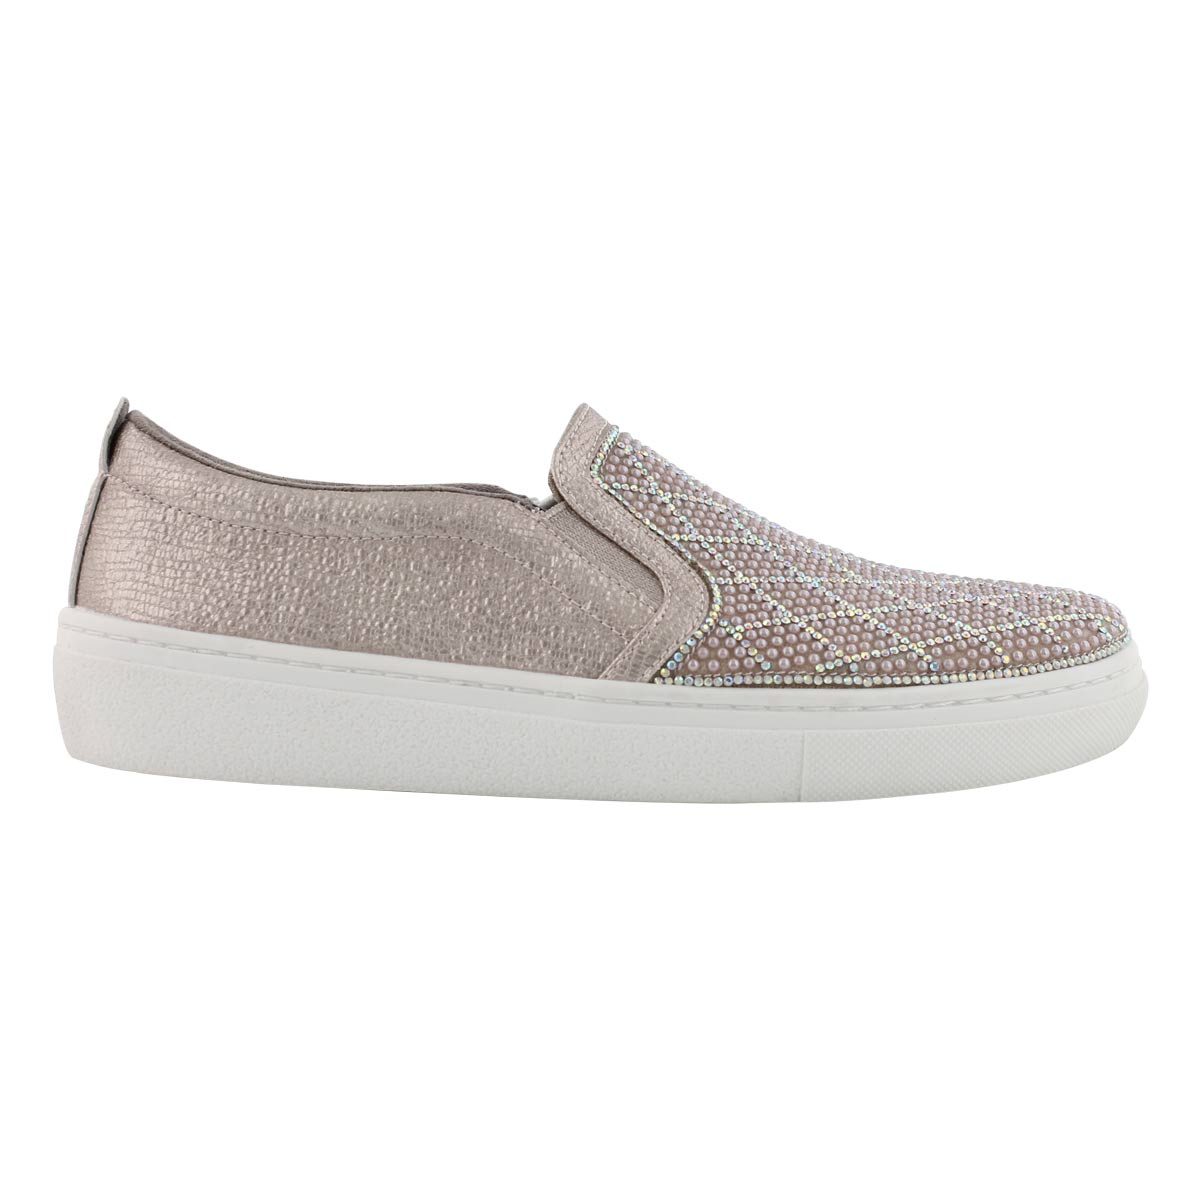 Lds Goldie Diamond Darling rs gd slip on